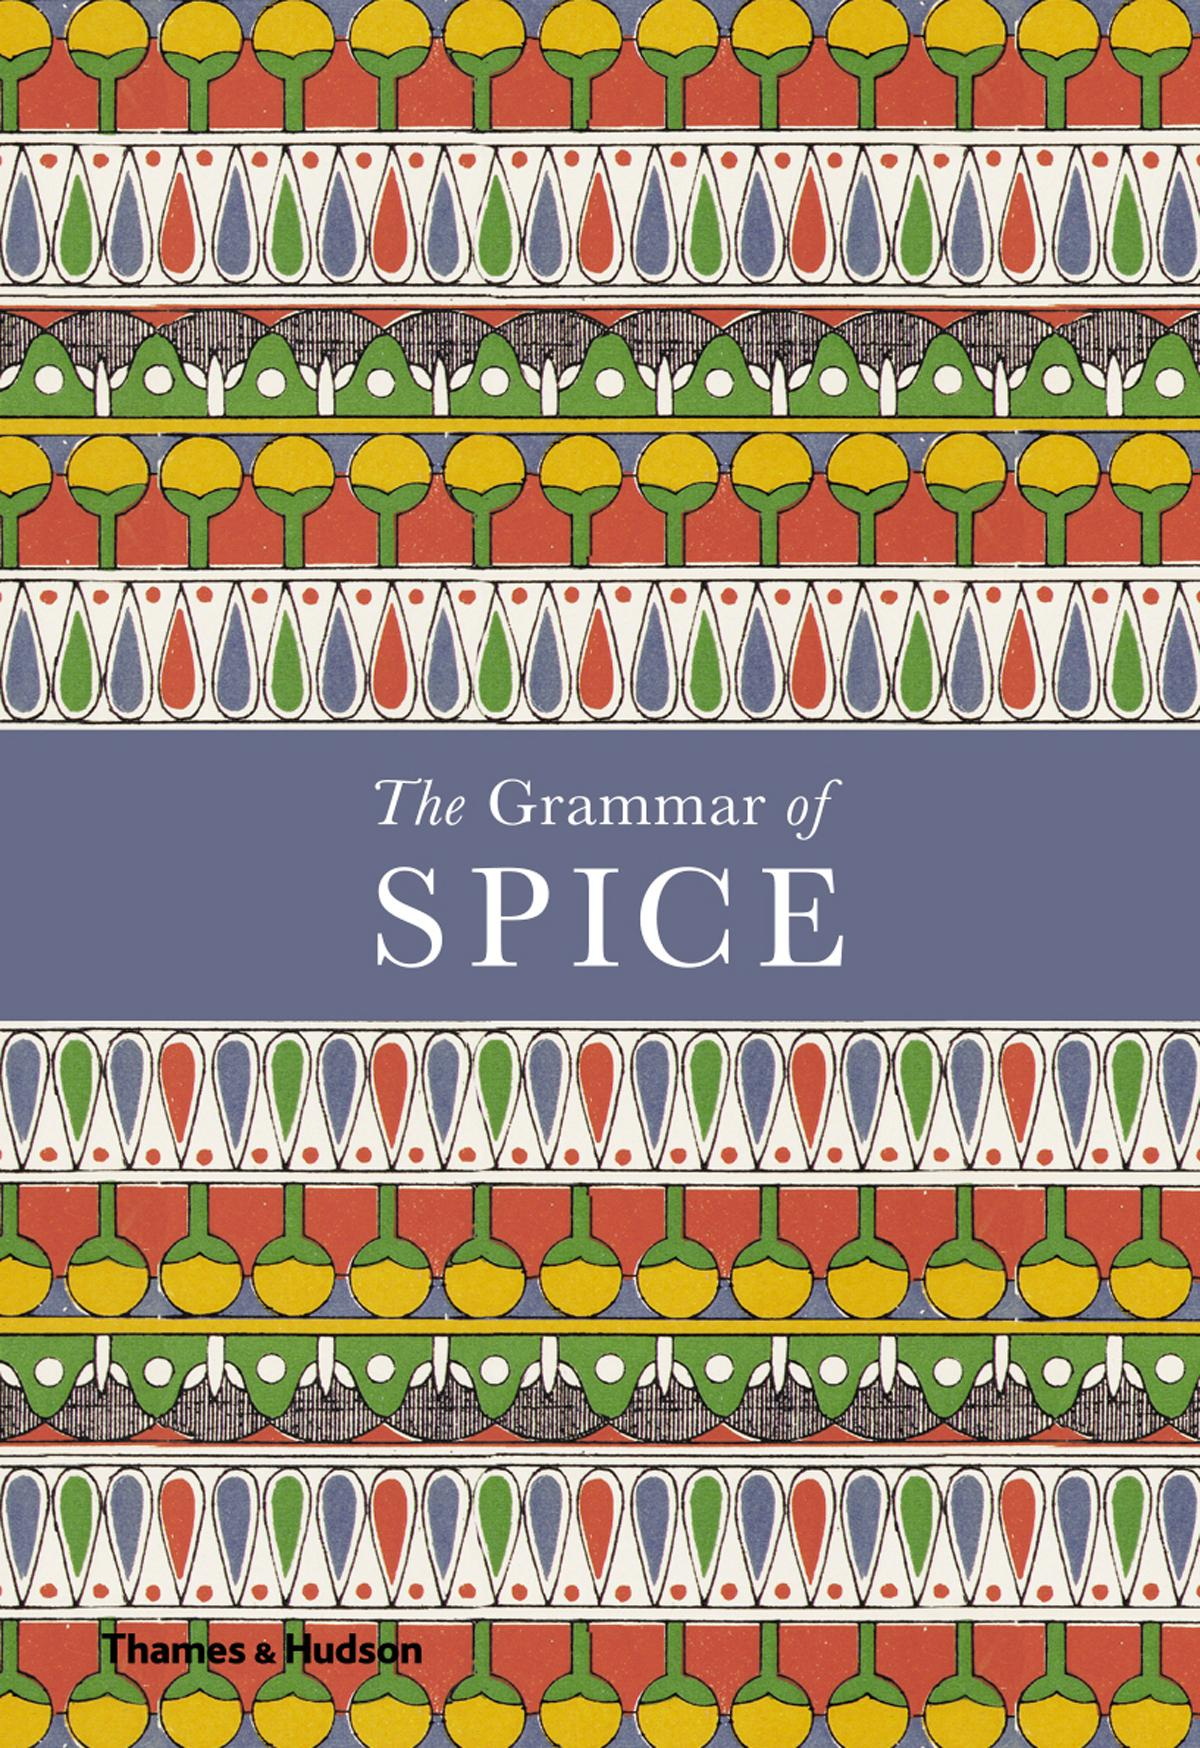 The Grammar of Spice